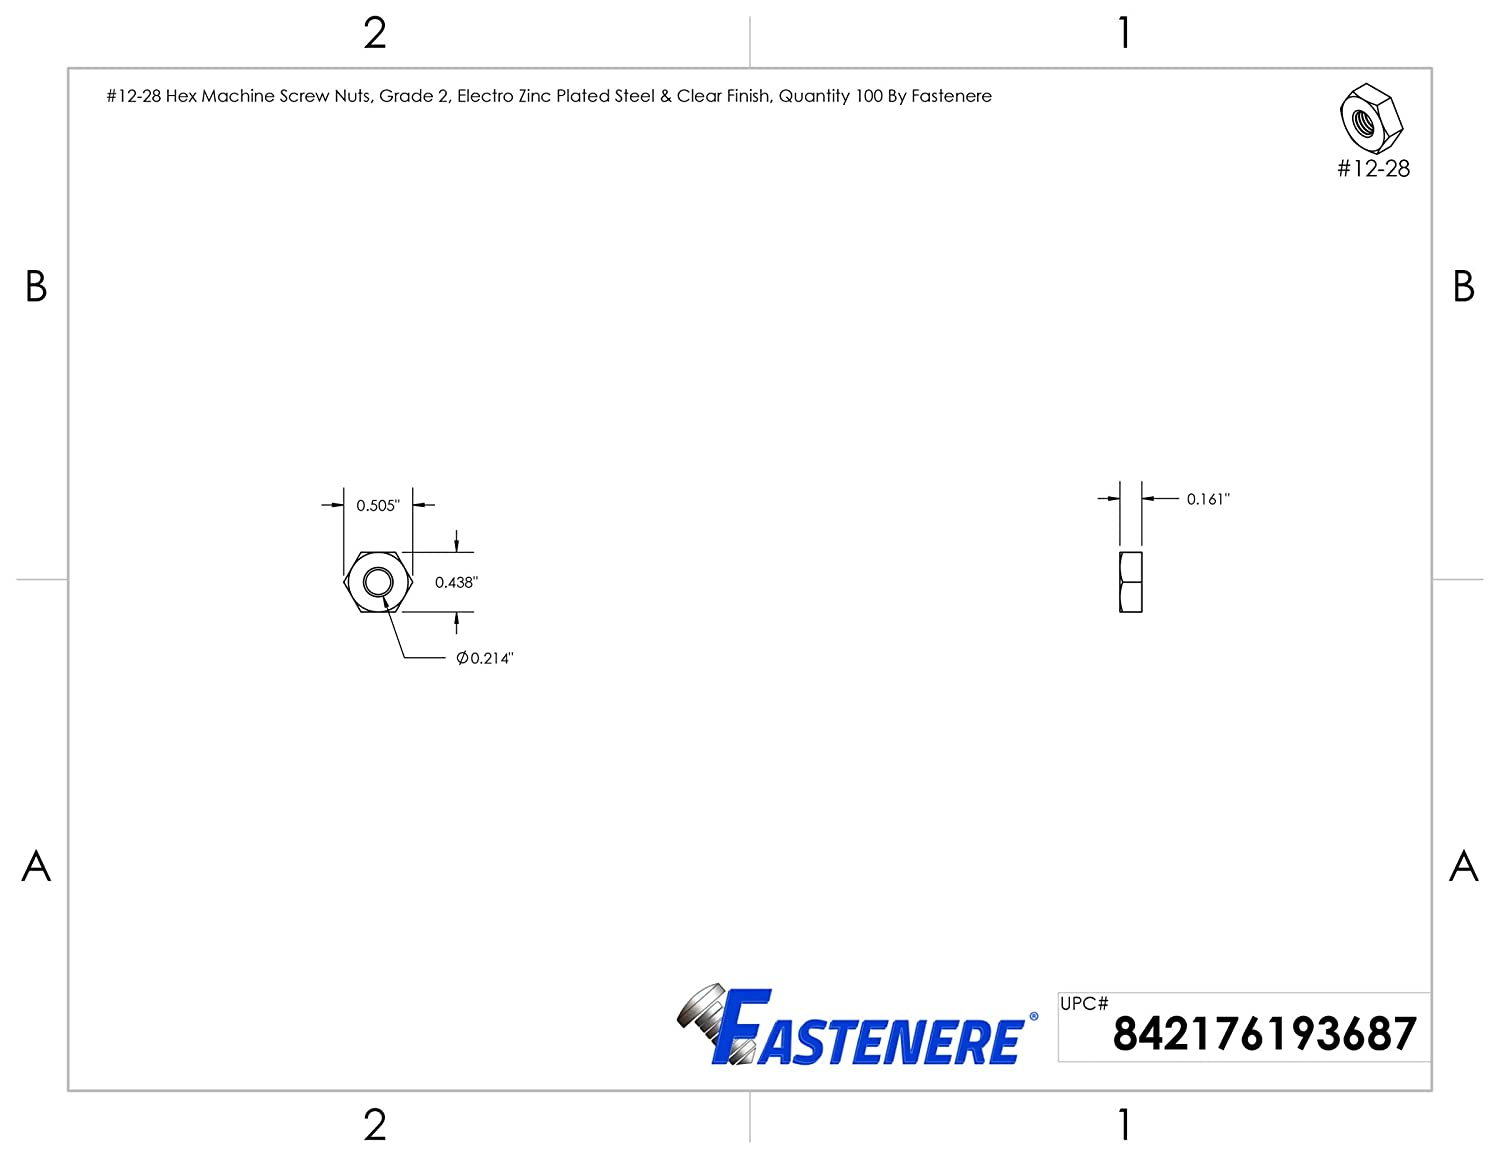 #10-32 Hex Machine Screw Nuts Electro Zinc Plated Steel /& Clear Finish Grade 2 Quantity 100 by Fastenere